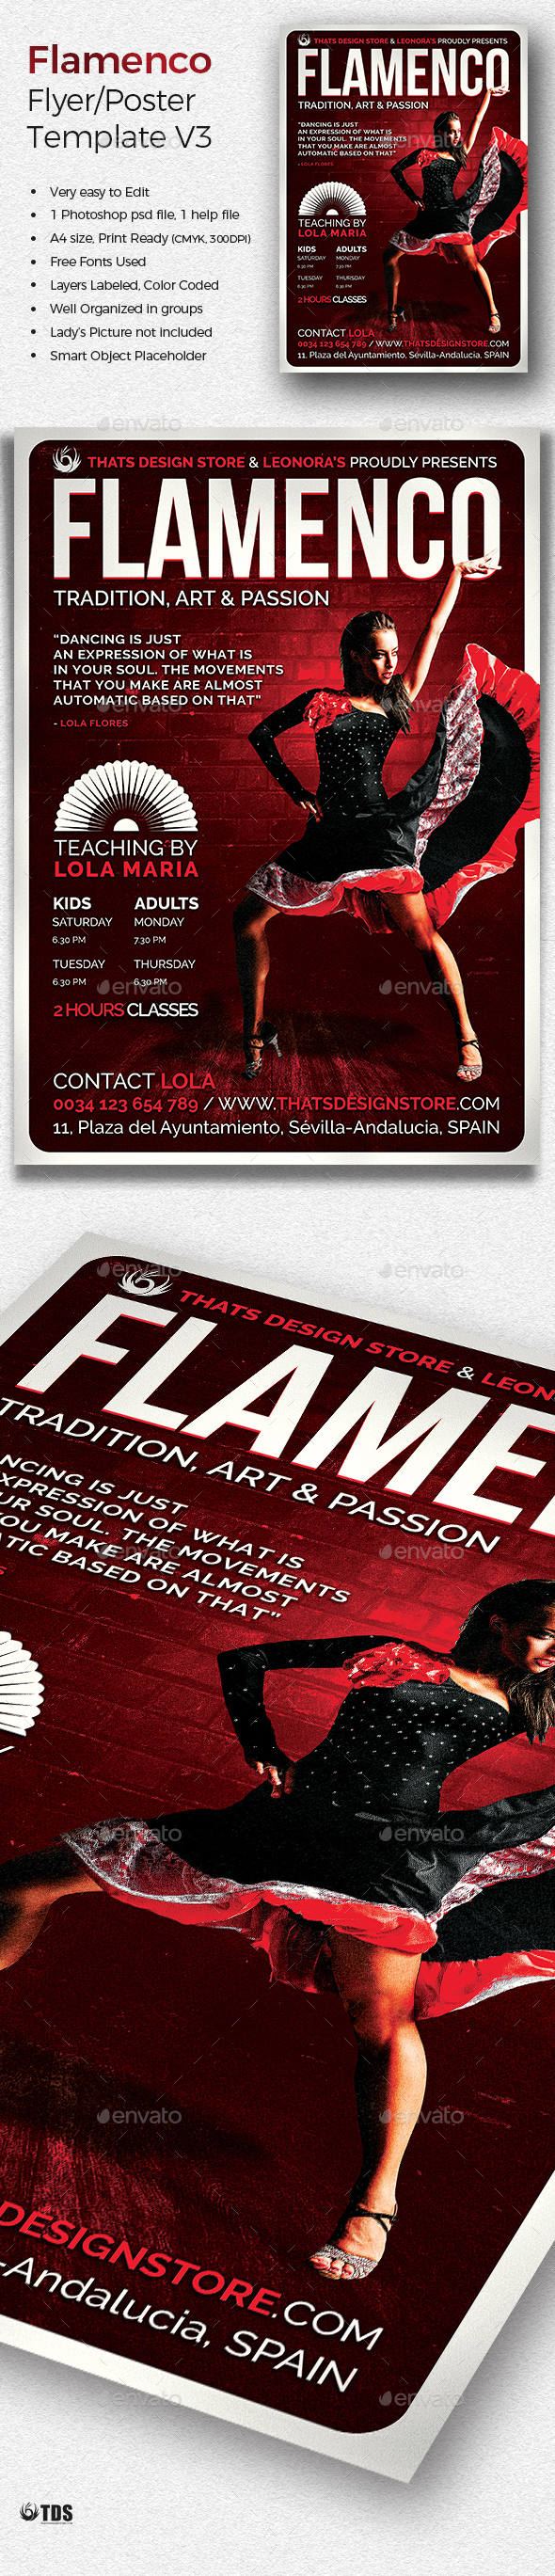 Flamenco Flyer Template V3 - Concerts Events